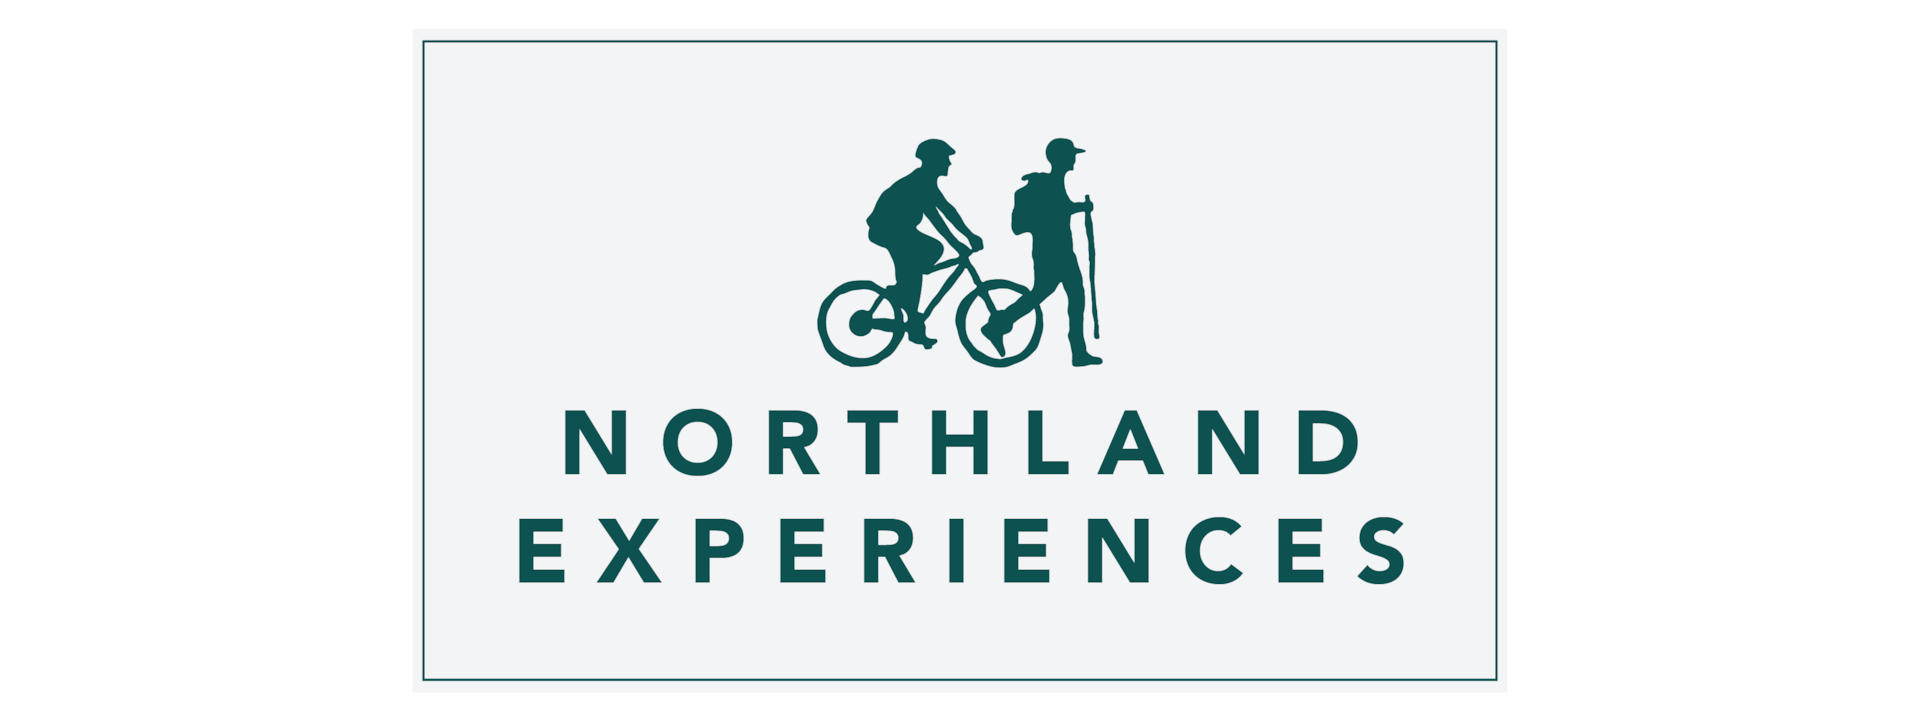 Logo: Northland Experiences - Unique Biking and Hiking Tours